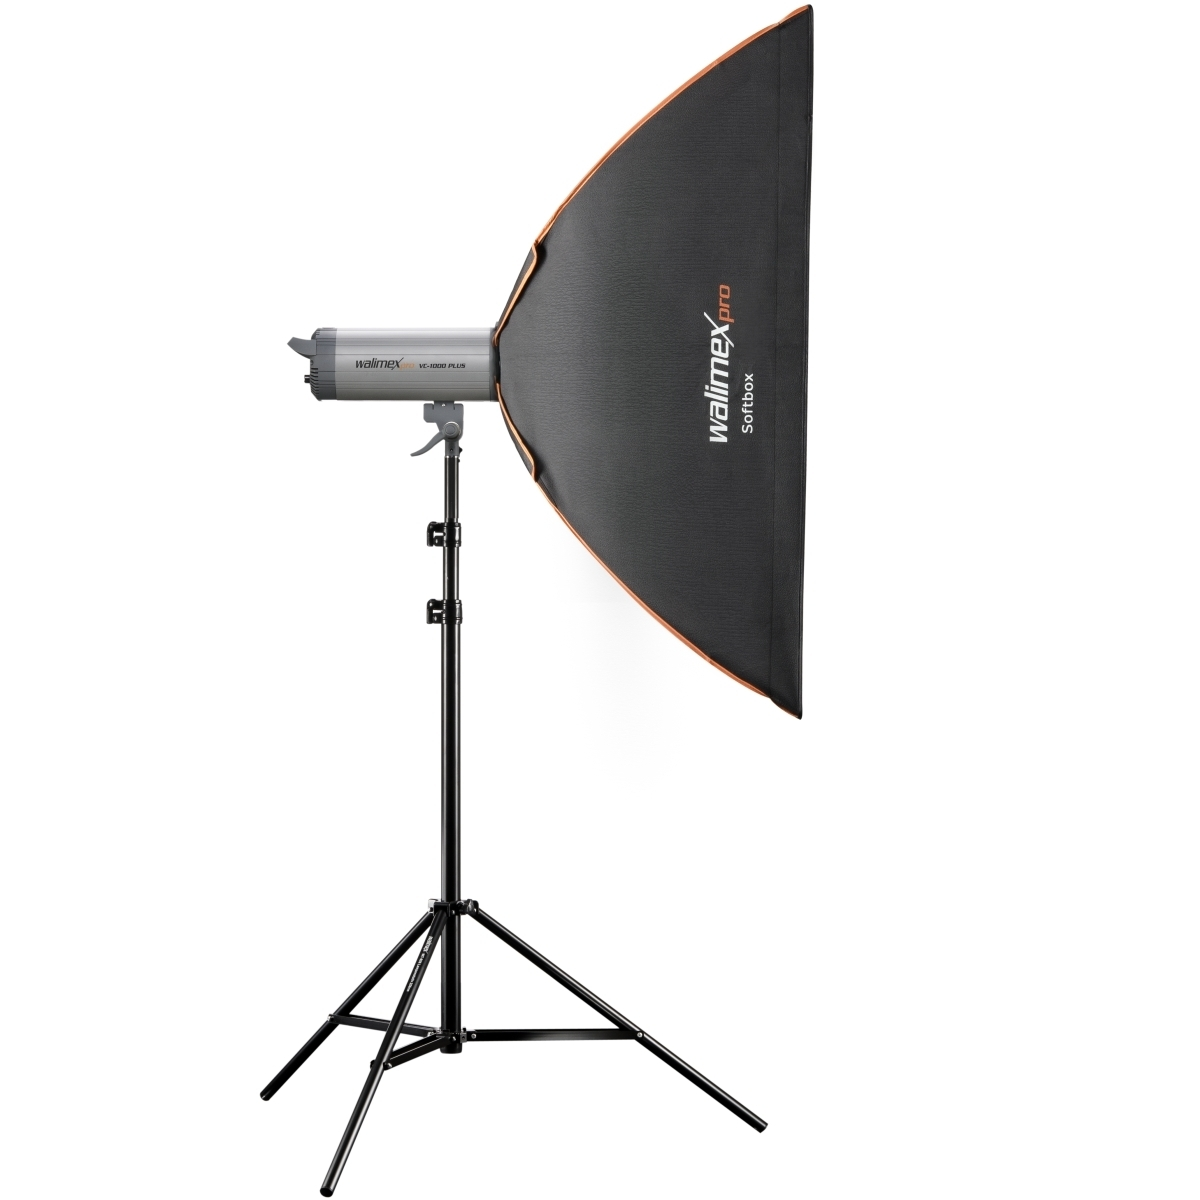 Walimex pro Softbox PLUS OL 80x120cm Aurora/Bowens